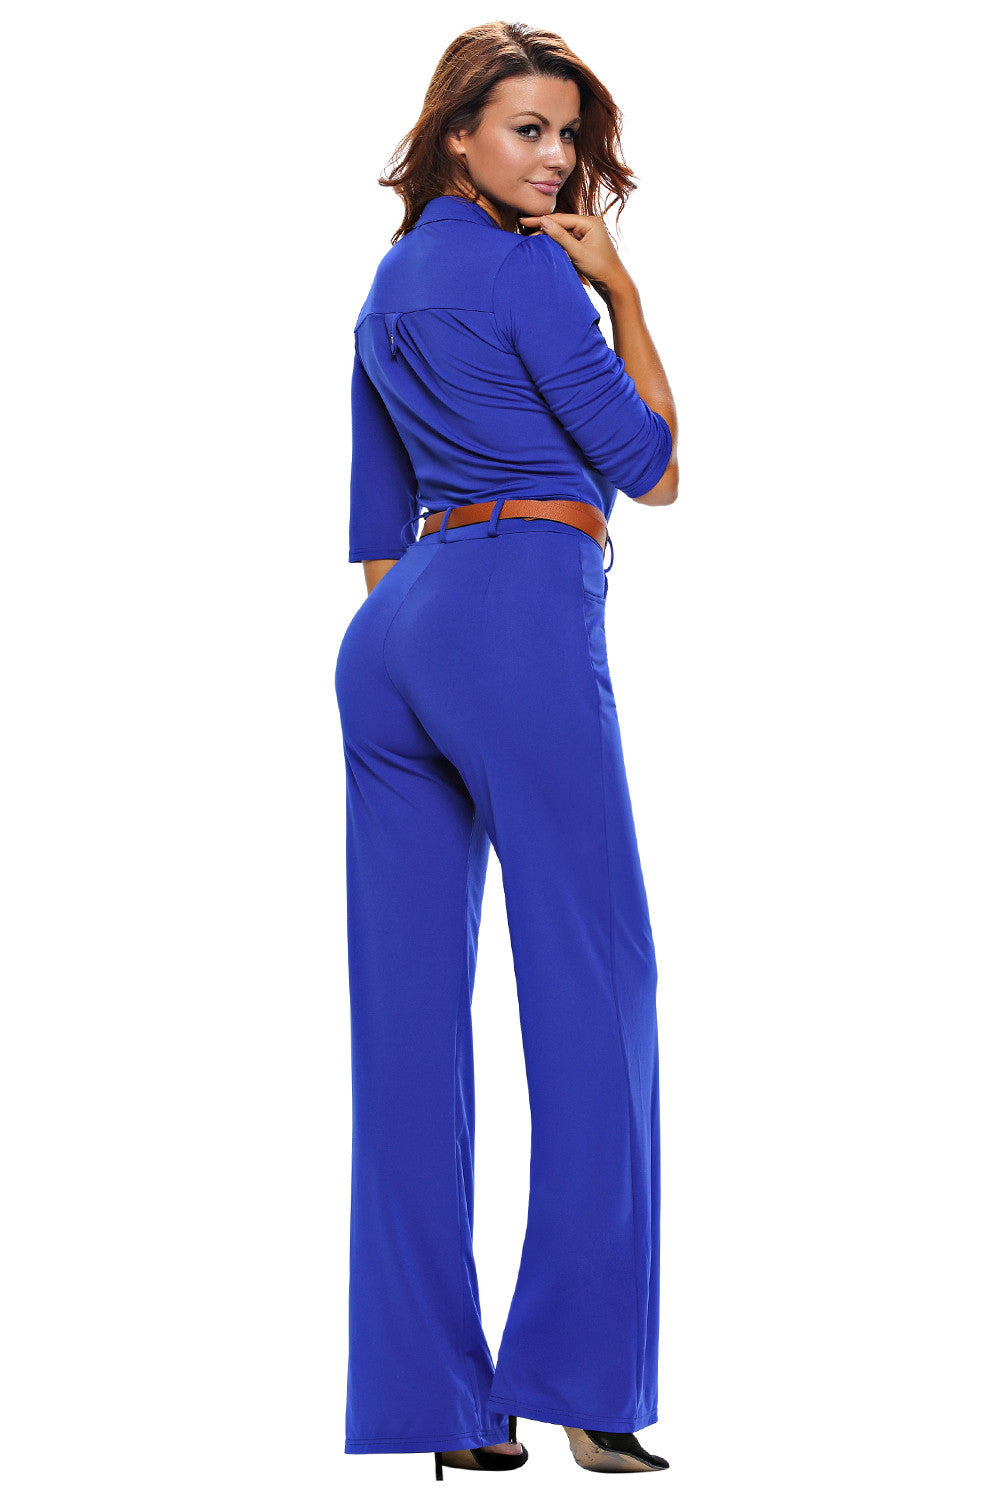 Half Sleeve Diva Fashion Wide Leg Jumpsuit 64205 - IBL Fashion - 3